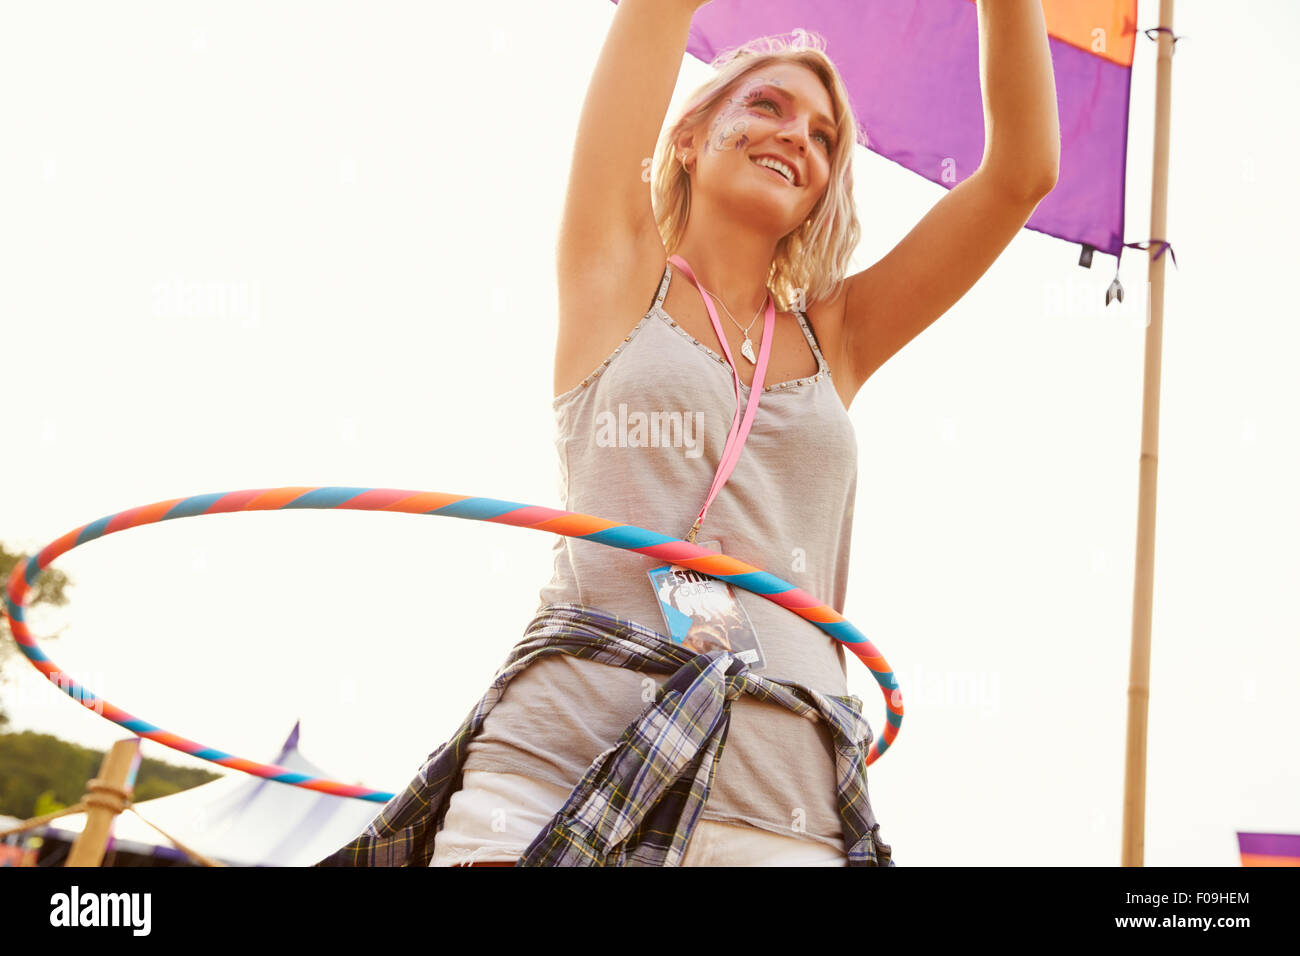 418f88de71 Blonde woman dancing with hula hoop at a music festival - Stock Image